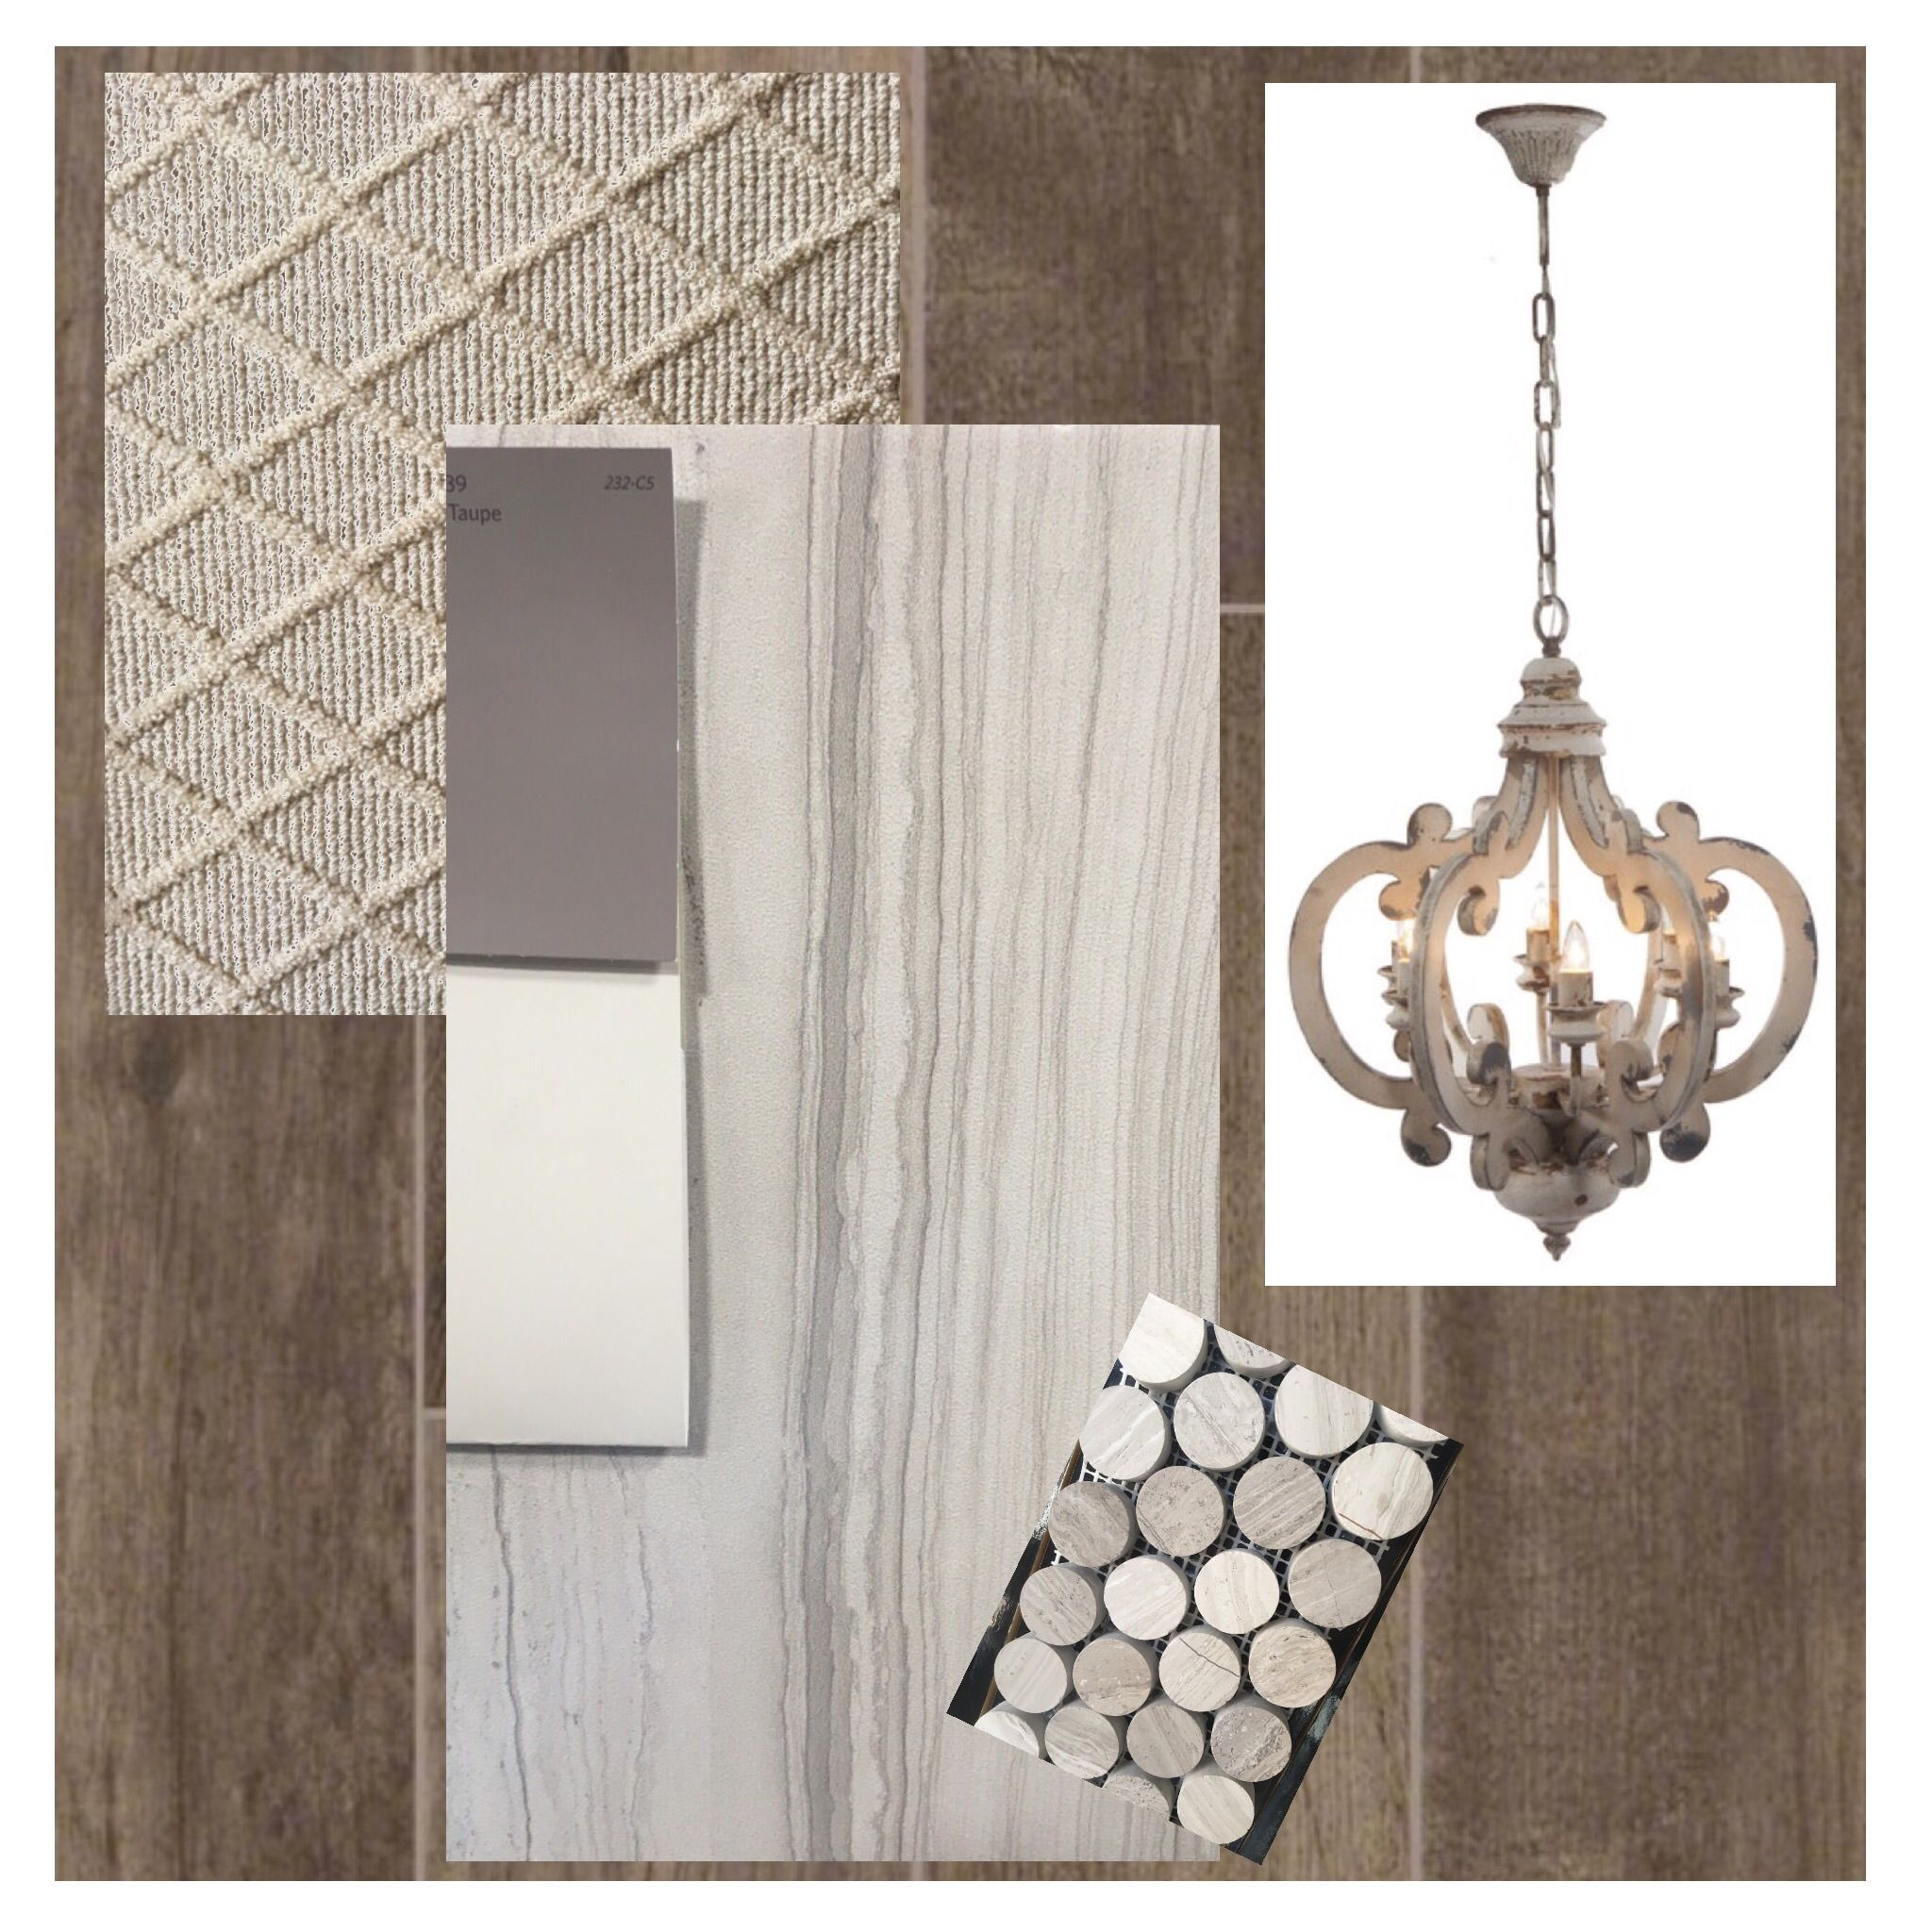 Simply Chic Poised Taupe Taupe Walls Taupe Paint